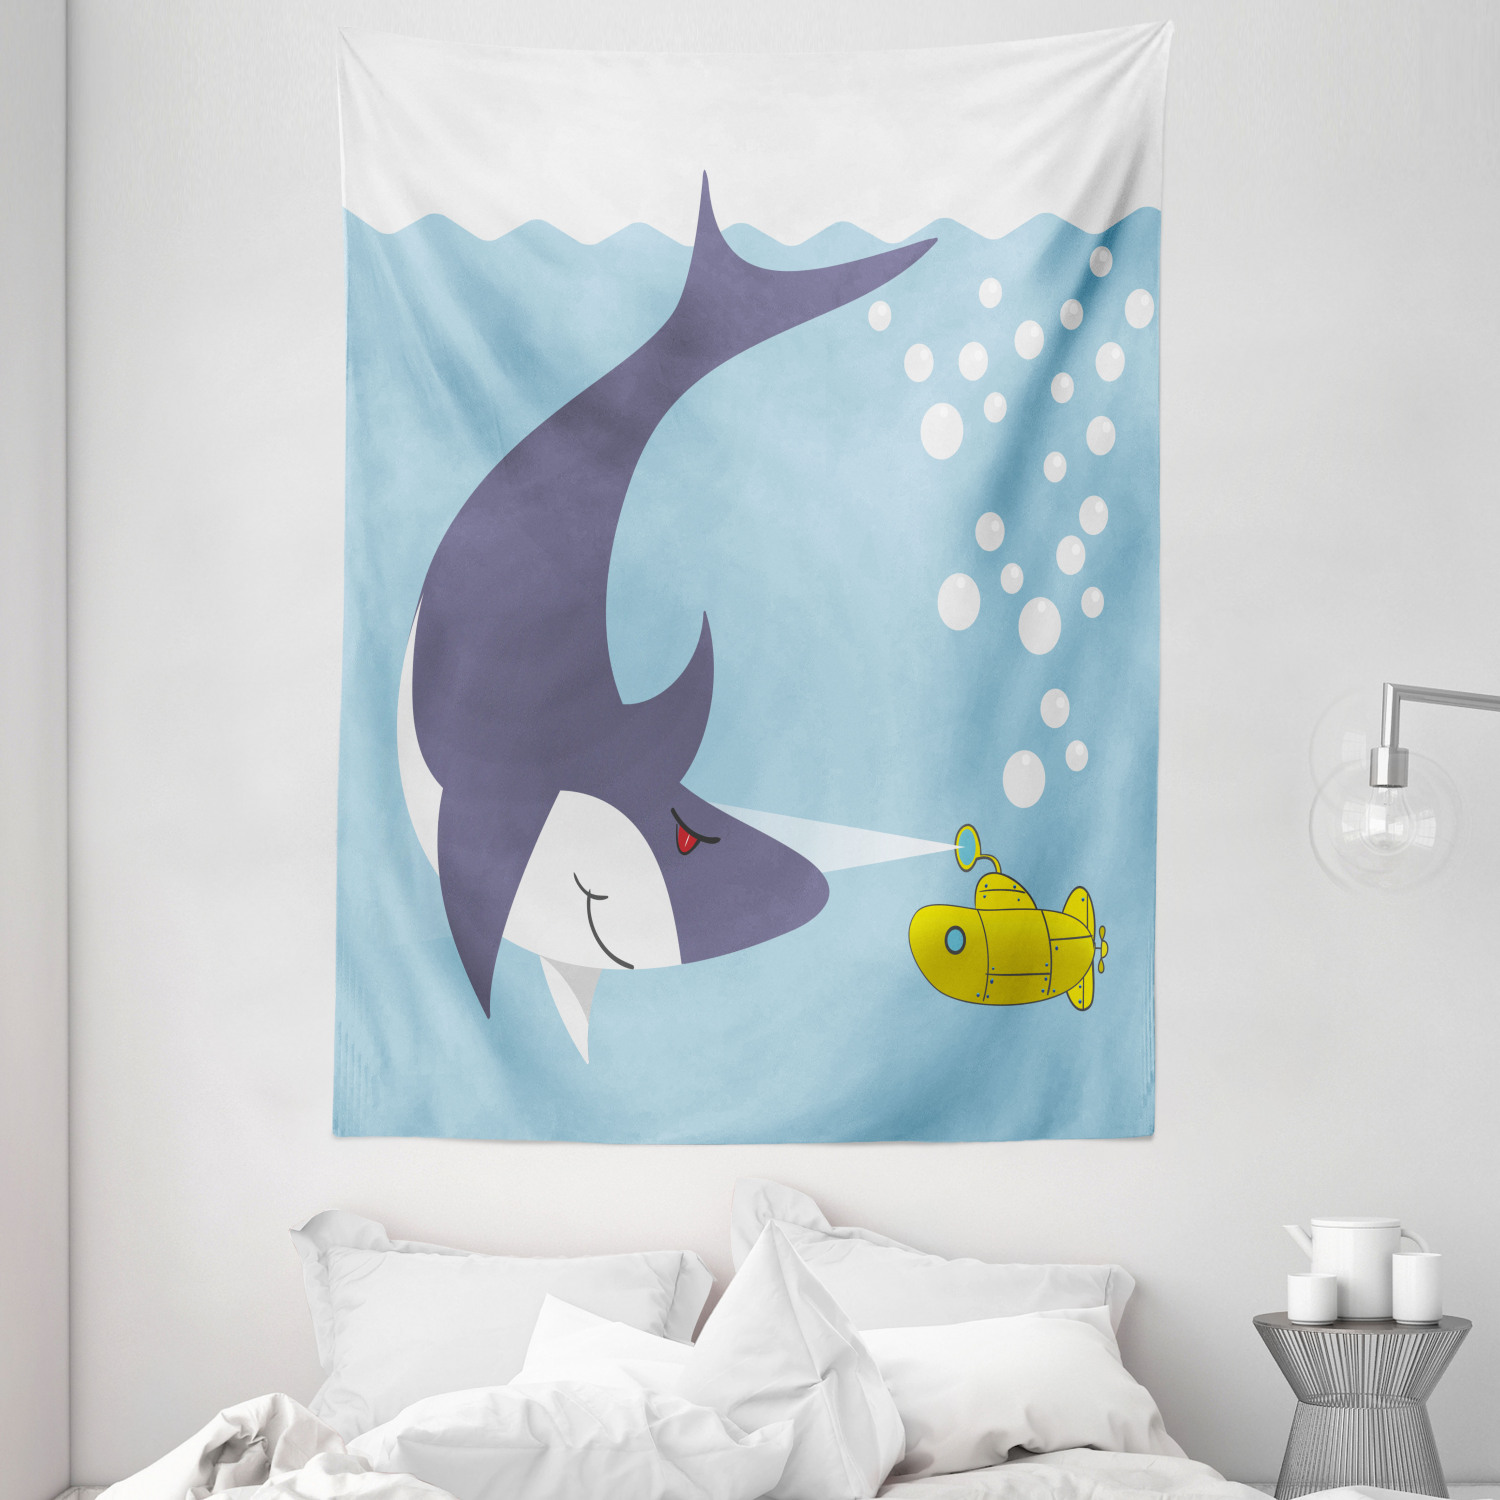 Yellow Submarine Tapestry Shark With Vessel In Ocean Bubbles Under Sea Theme Animals Cartoon Wall Hanging For Bedroom Living Room Dorm Decor 60w X 80l Inches Blue Gray Yellow By Ambesonne